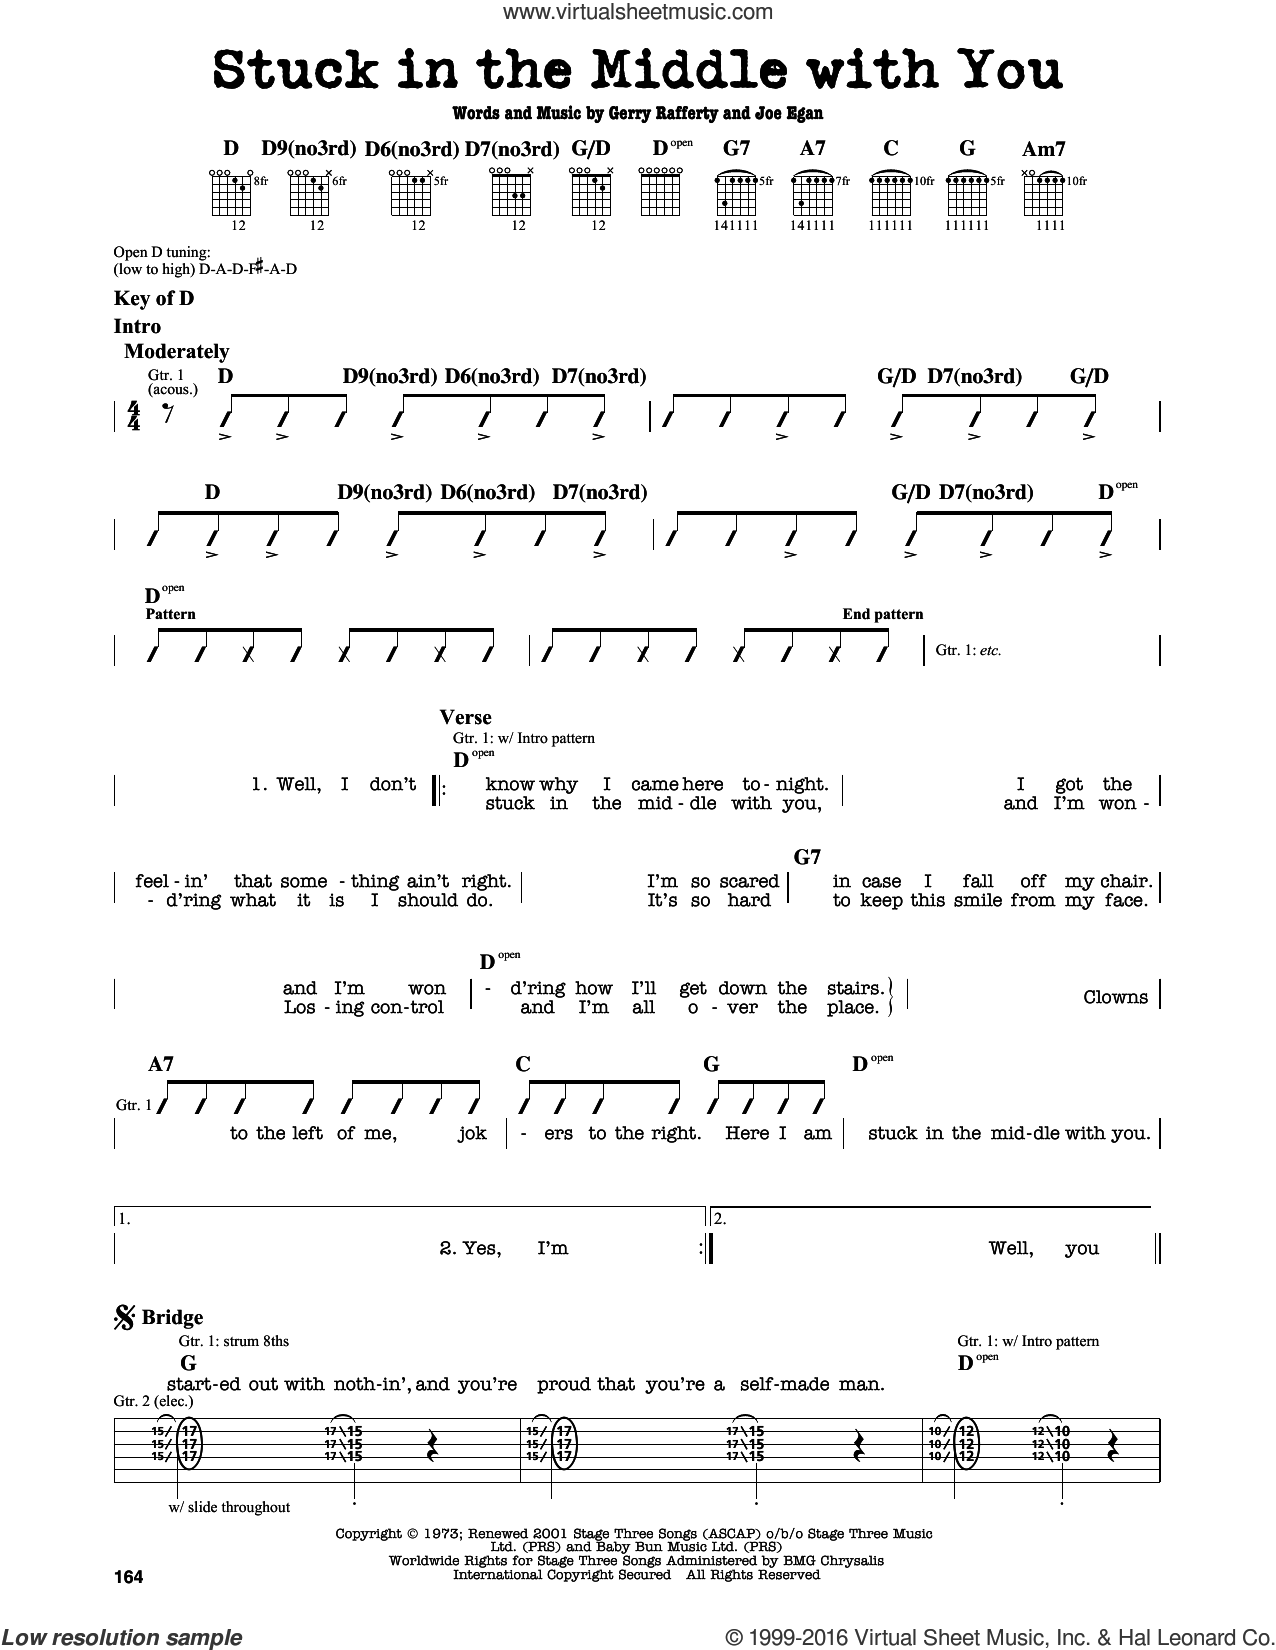 Stuck In The Middle With You sheet music for guitar solo (lead sheet) by Stealers Wheel, Gerry Rafferty and Joe Egan, intermediate guitar (lead sheet). Score Image Preview.